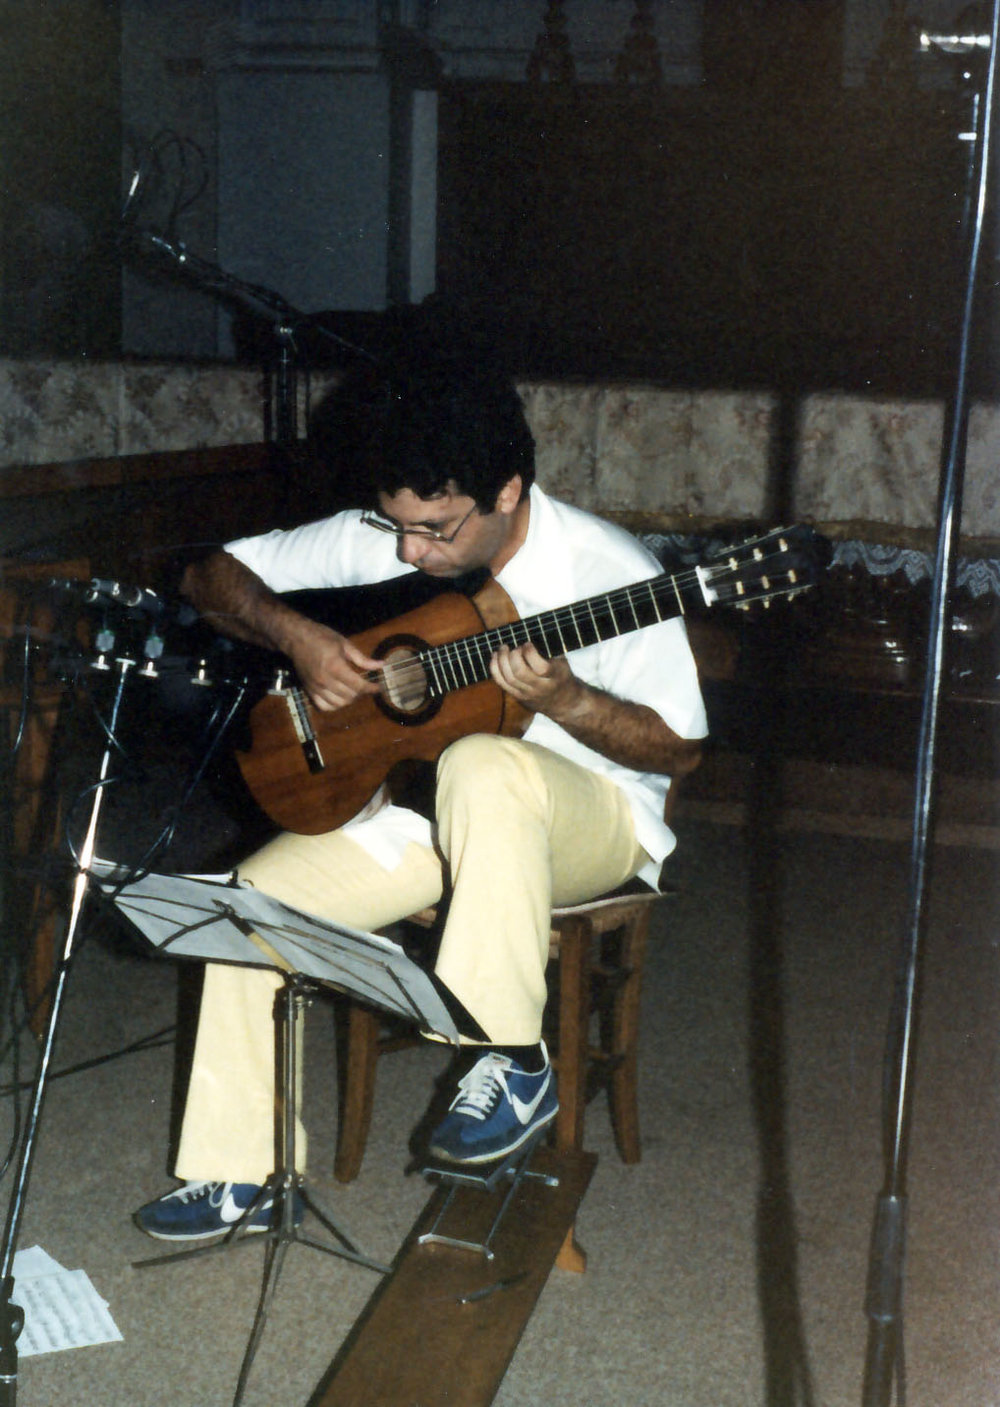 Recording on 1856 Torres guitar